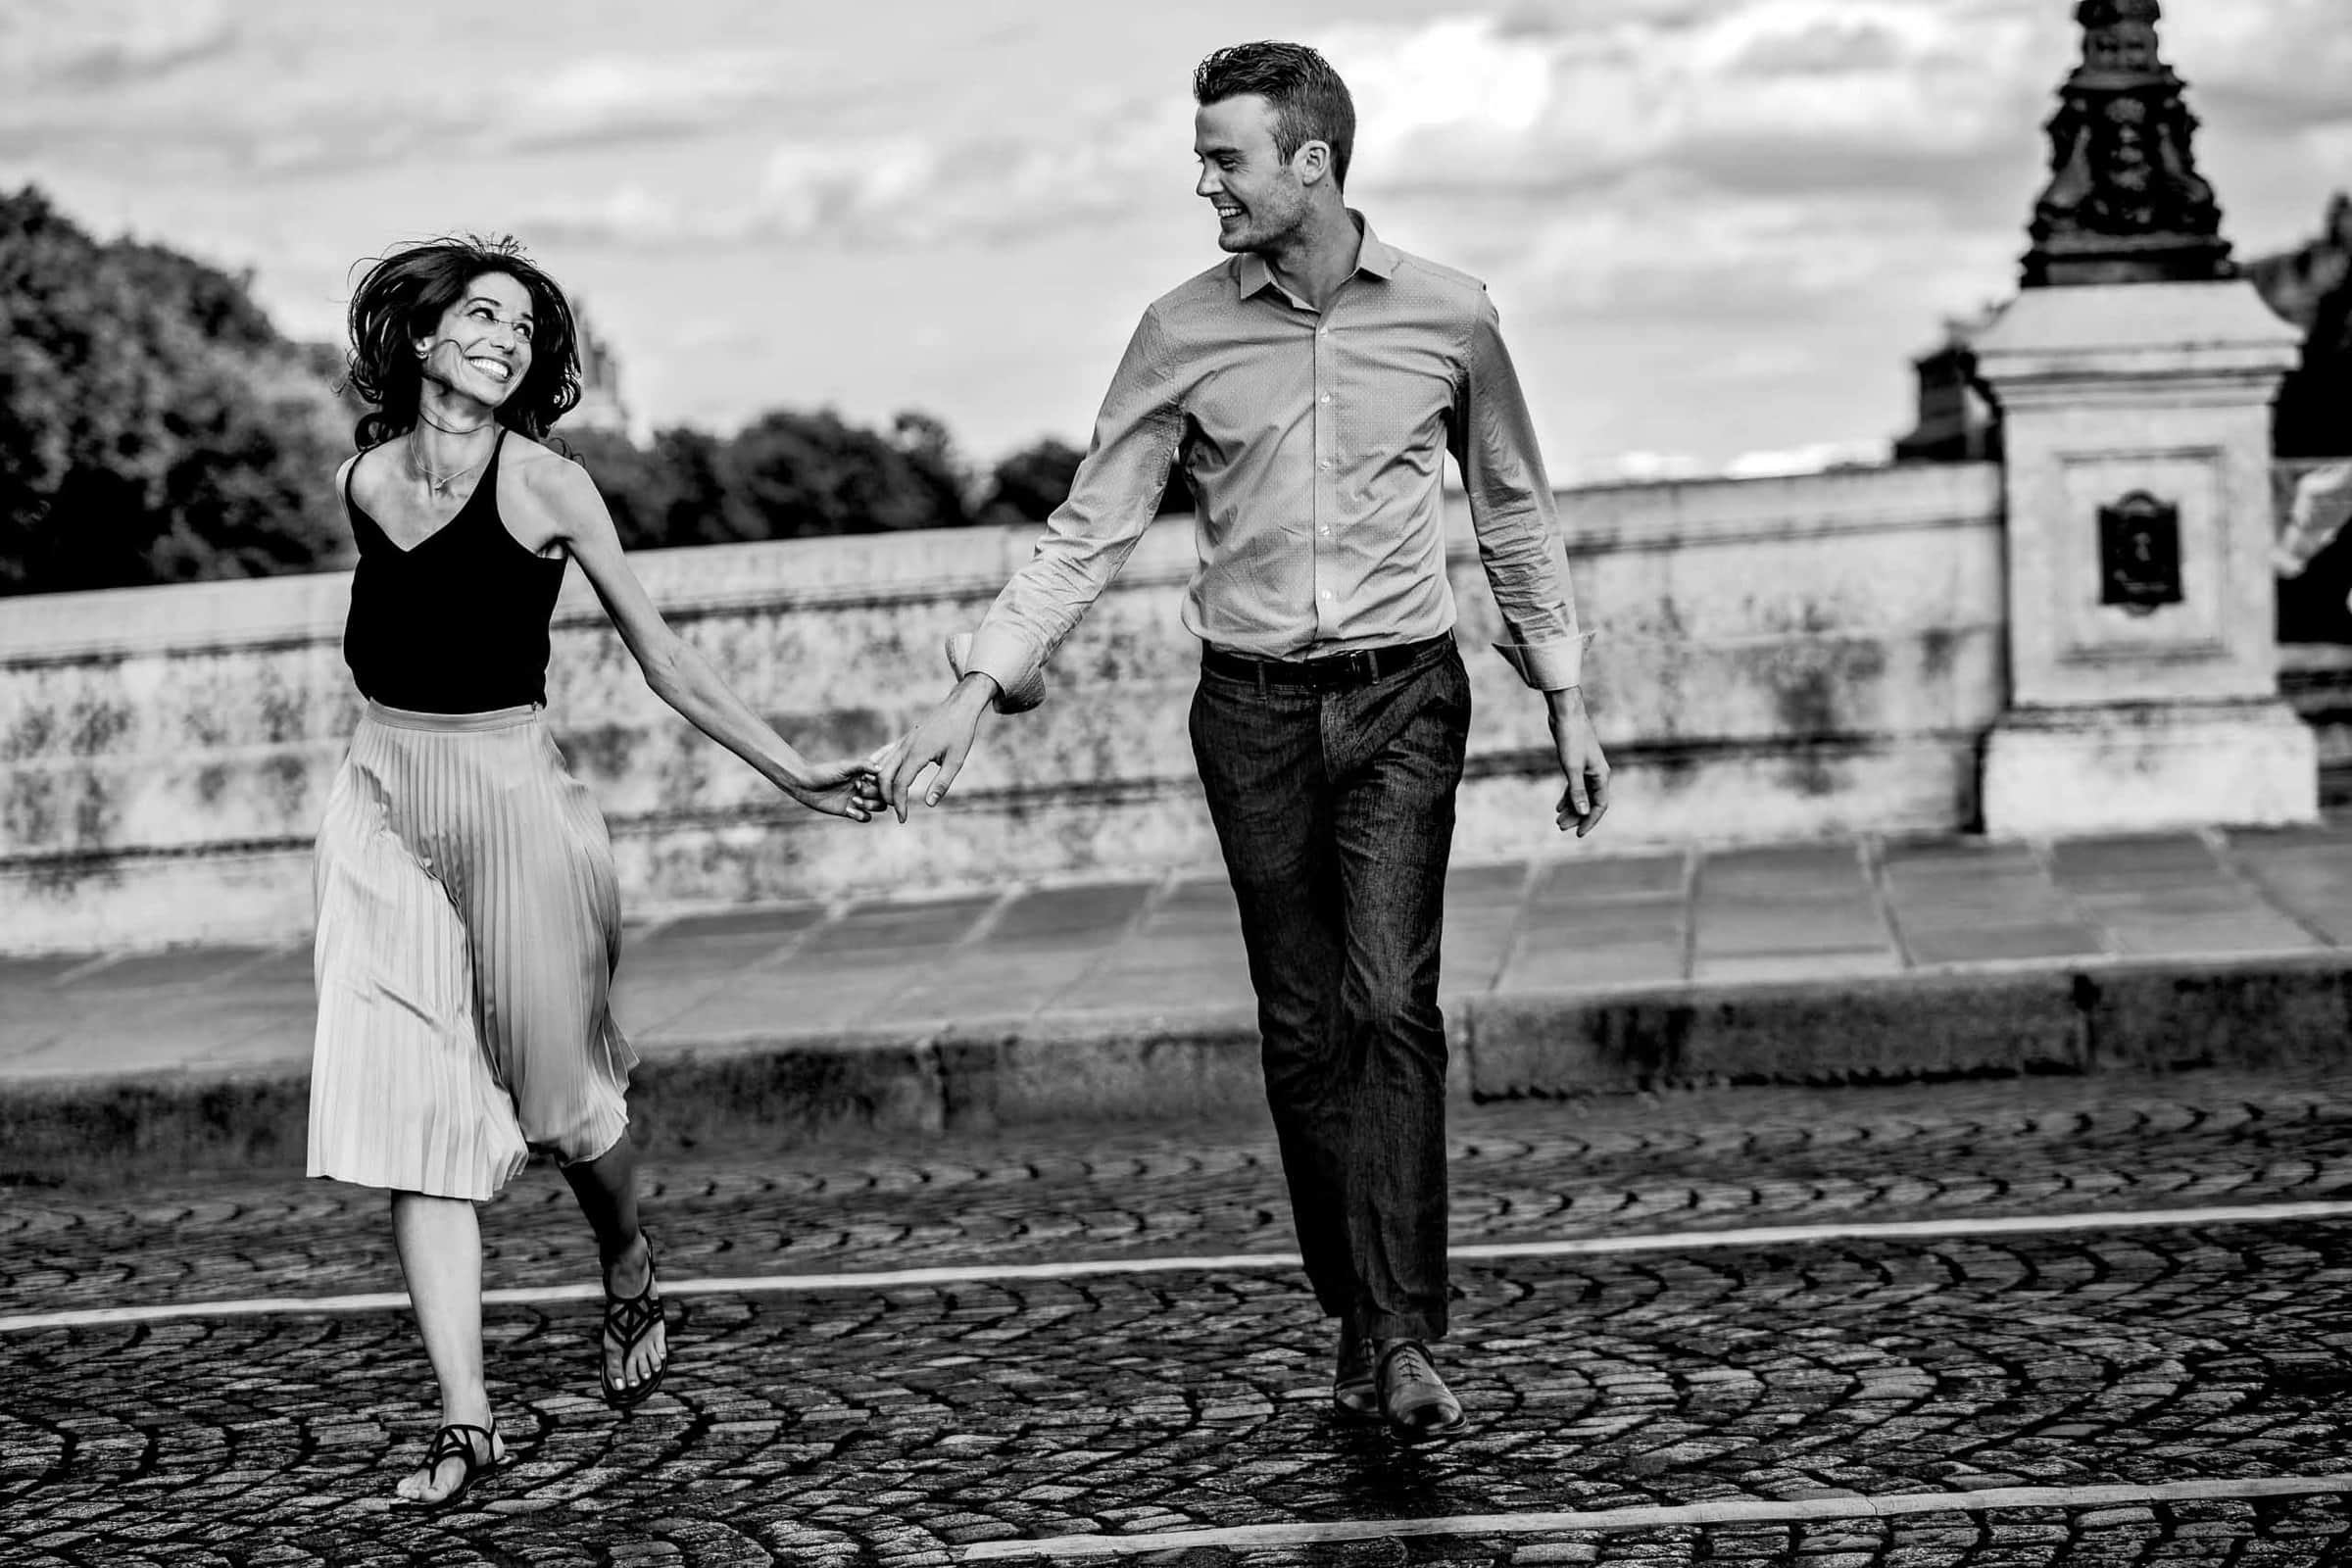 A creative portrait of a couple walking hand and hand on Pont Neuf during their Paris engagement photo session